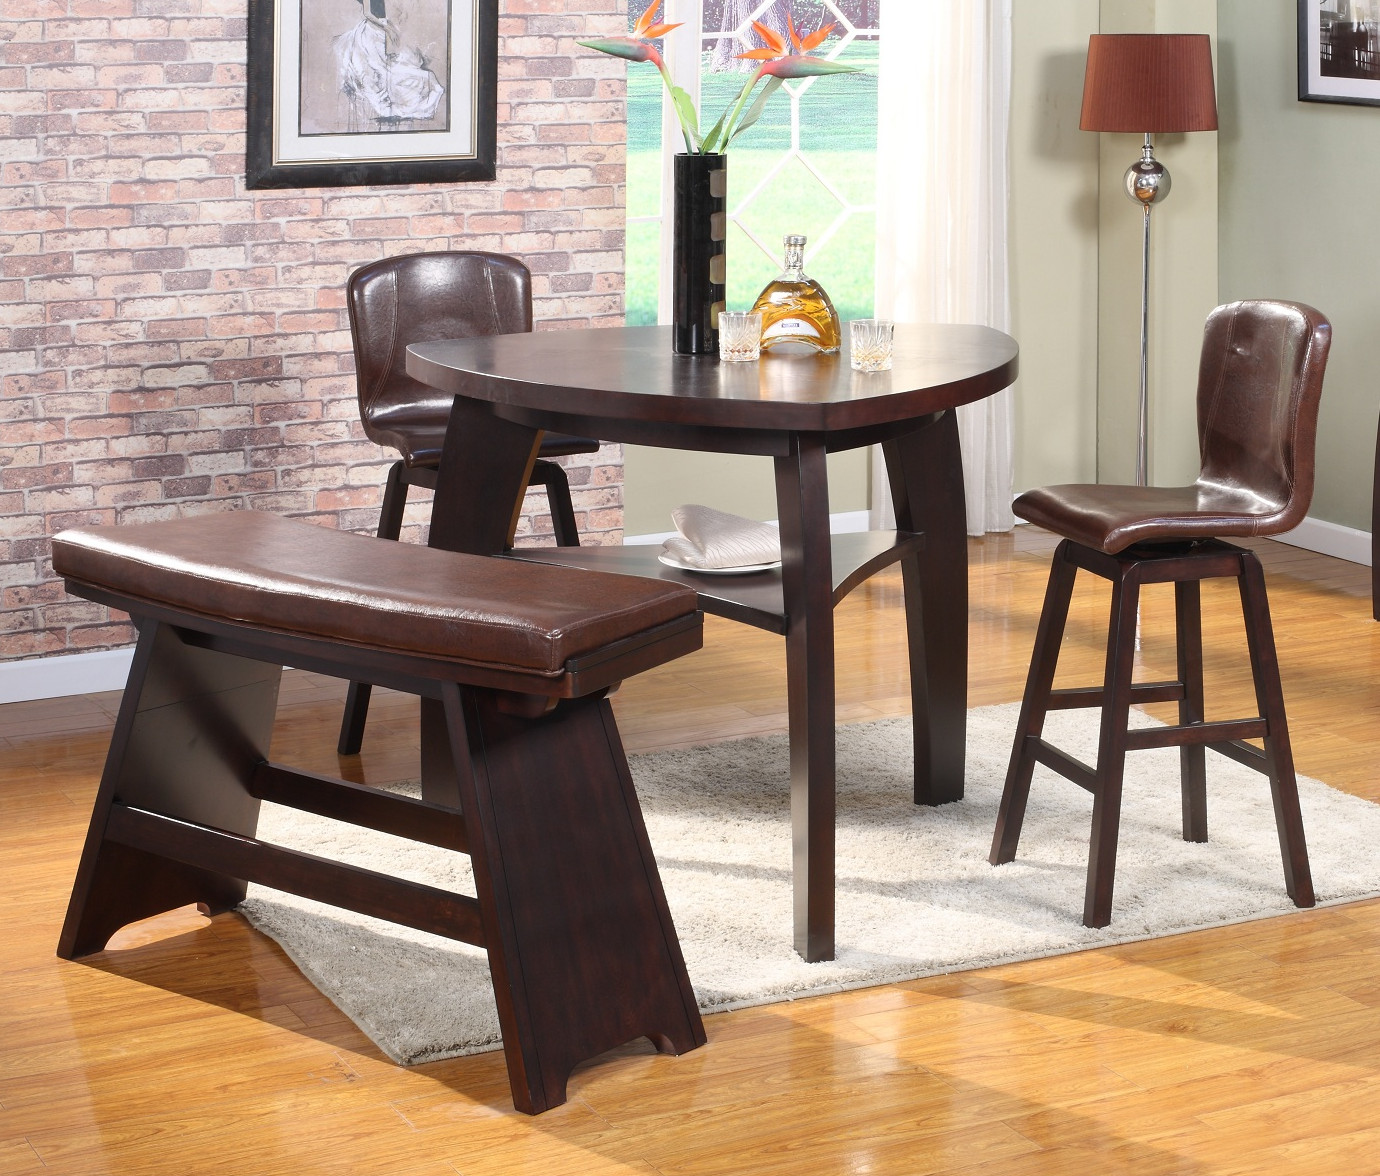 Roundhill Furniture - Triangle dining table set